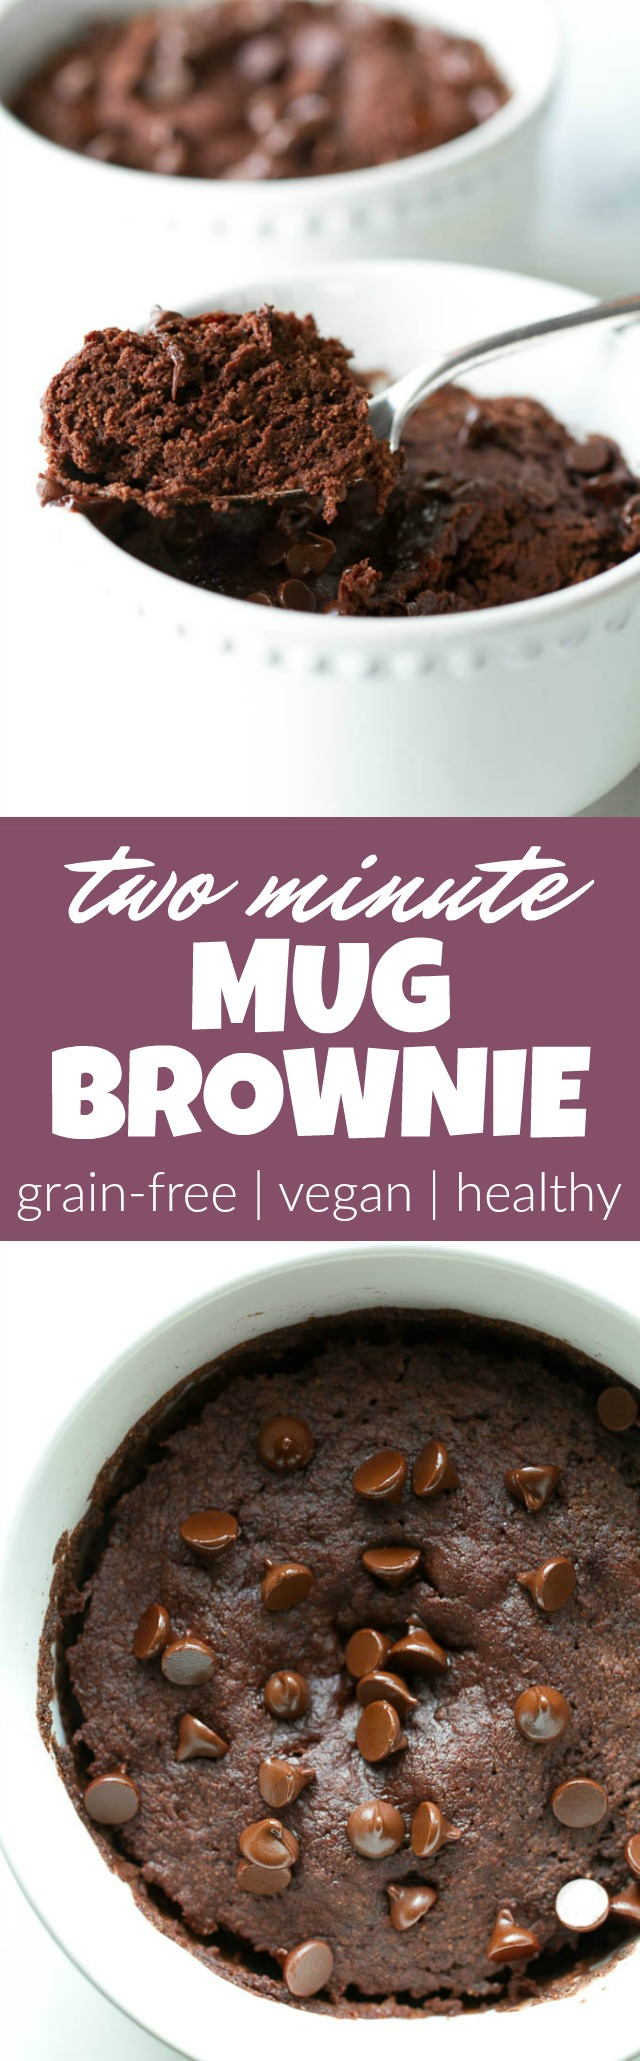 This healthy two minute mug brownie is so fudgy, moist, and chocolatey that you'd never be able to tell it's made with NO flour, butter, or oil. Satisfy those chocolate cravings with a vegan, gluten-free, and paleo treat that's super quick and easy to make | runningwithspoons.com